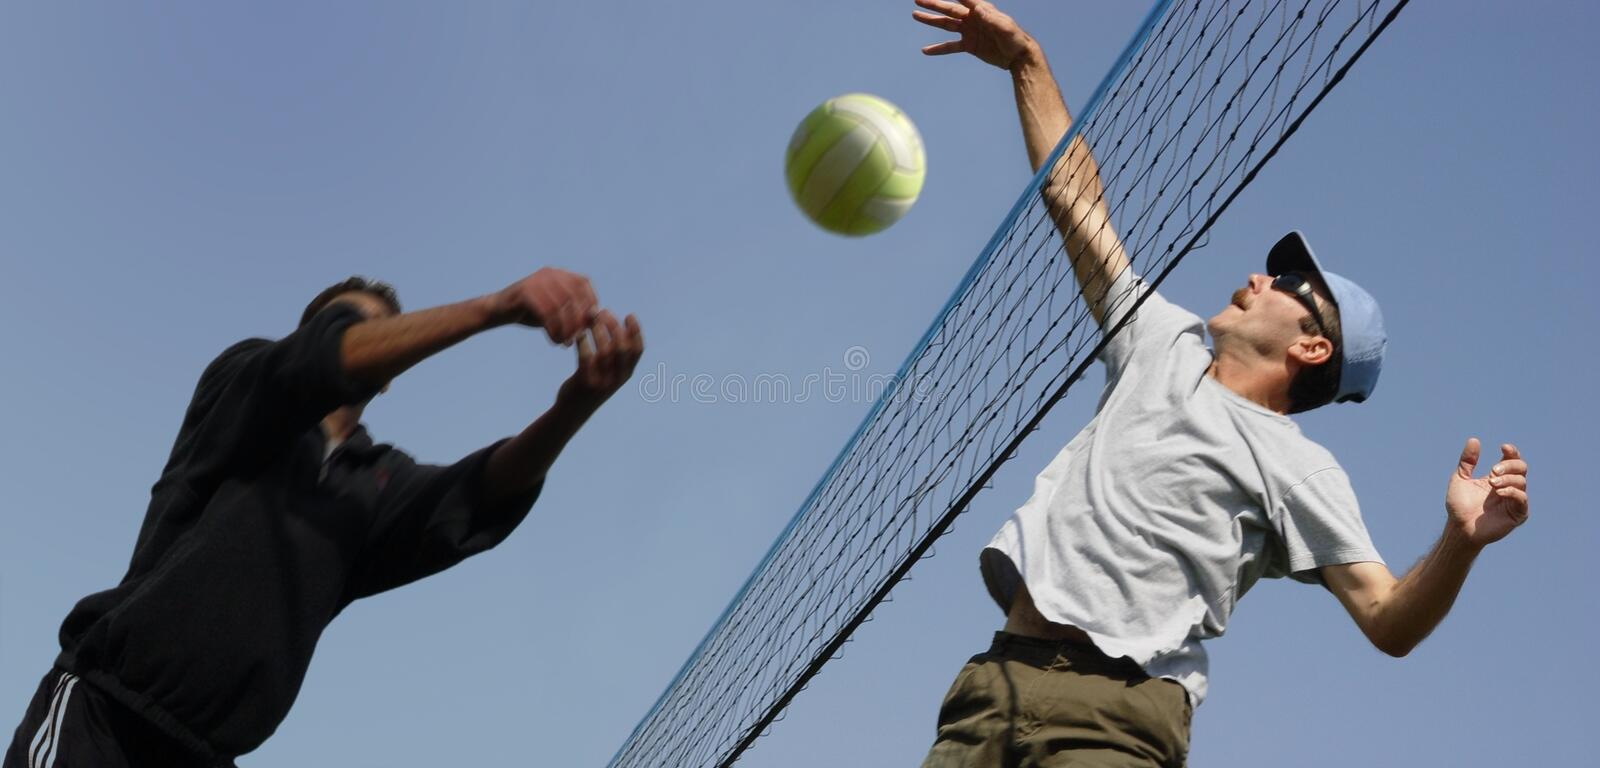 Download Voleibol foto de stock. Imagem de divertimento, outdoor - 62038